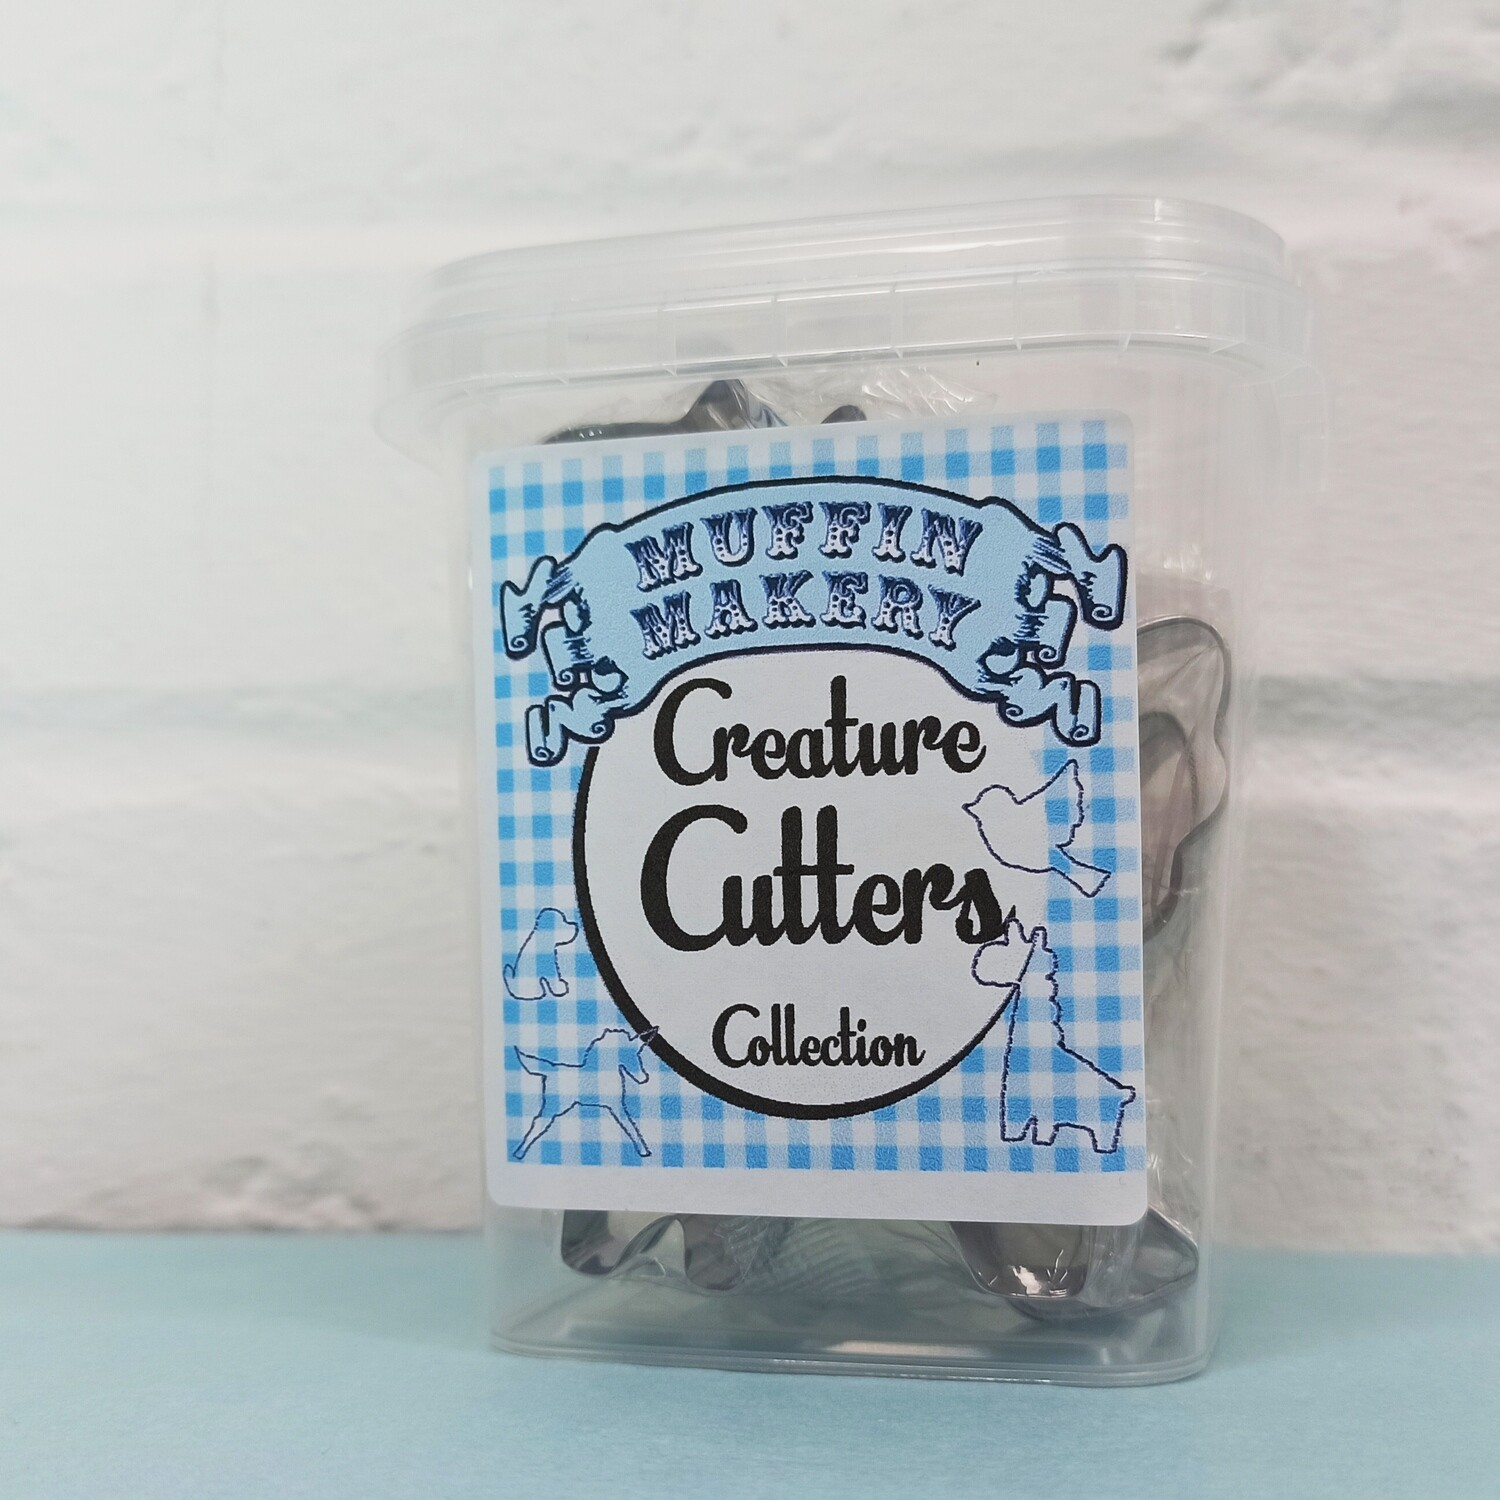 Creature Cutters Collection